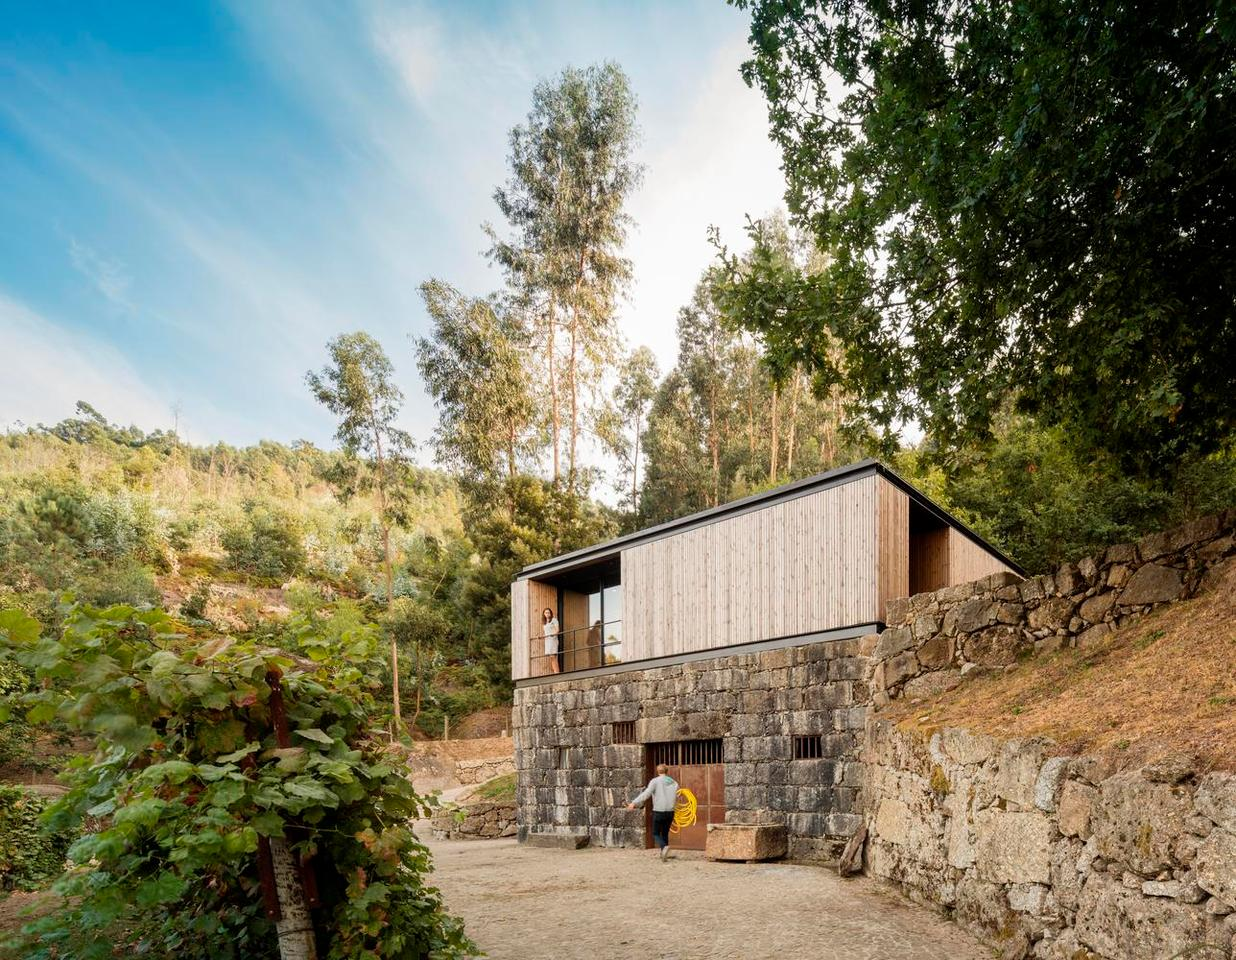 Pavilion House is separated from the main house by the surrounding vineyard and forest landscape